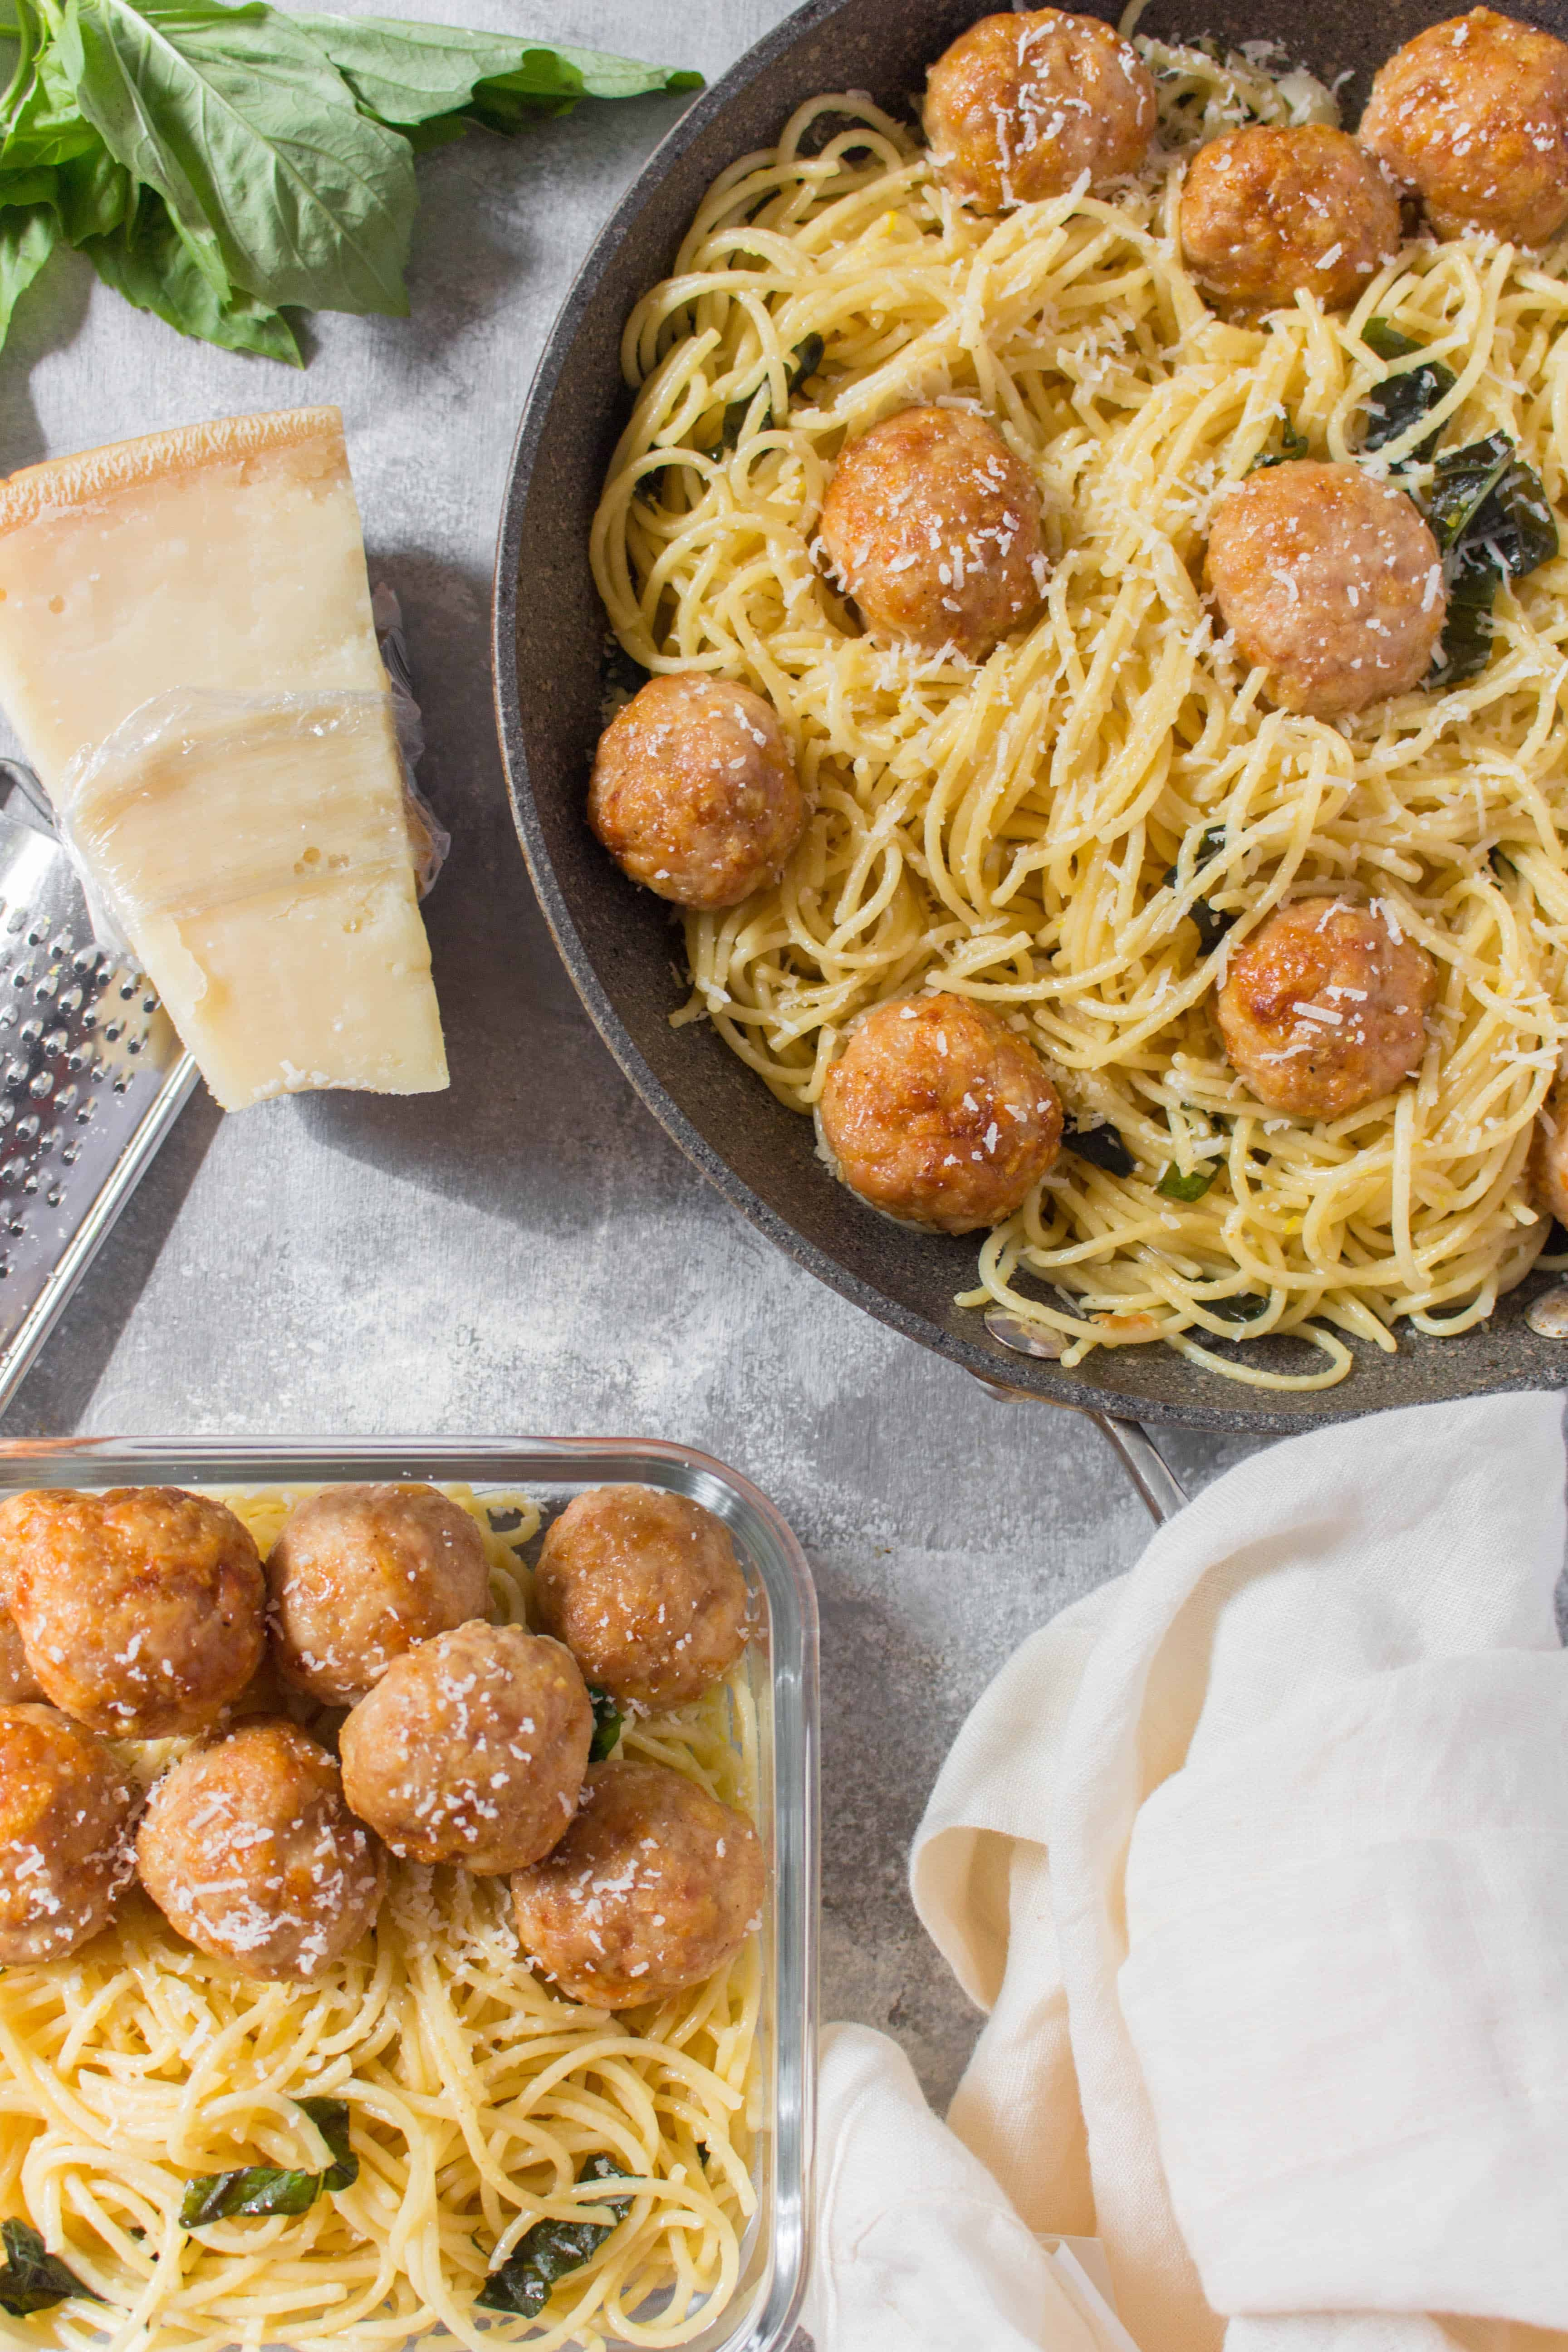 You really can't go wrong with Lemon Garlic Basil Butter Spaghetti with Chicken Meatballs for dinner! The spaghetti is so easy to whip up with pantry staples and the chicken meatballs are freezer friendly so make a batch then freeze them for when you need them!